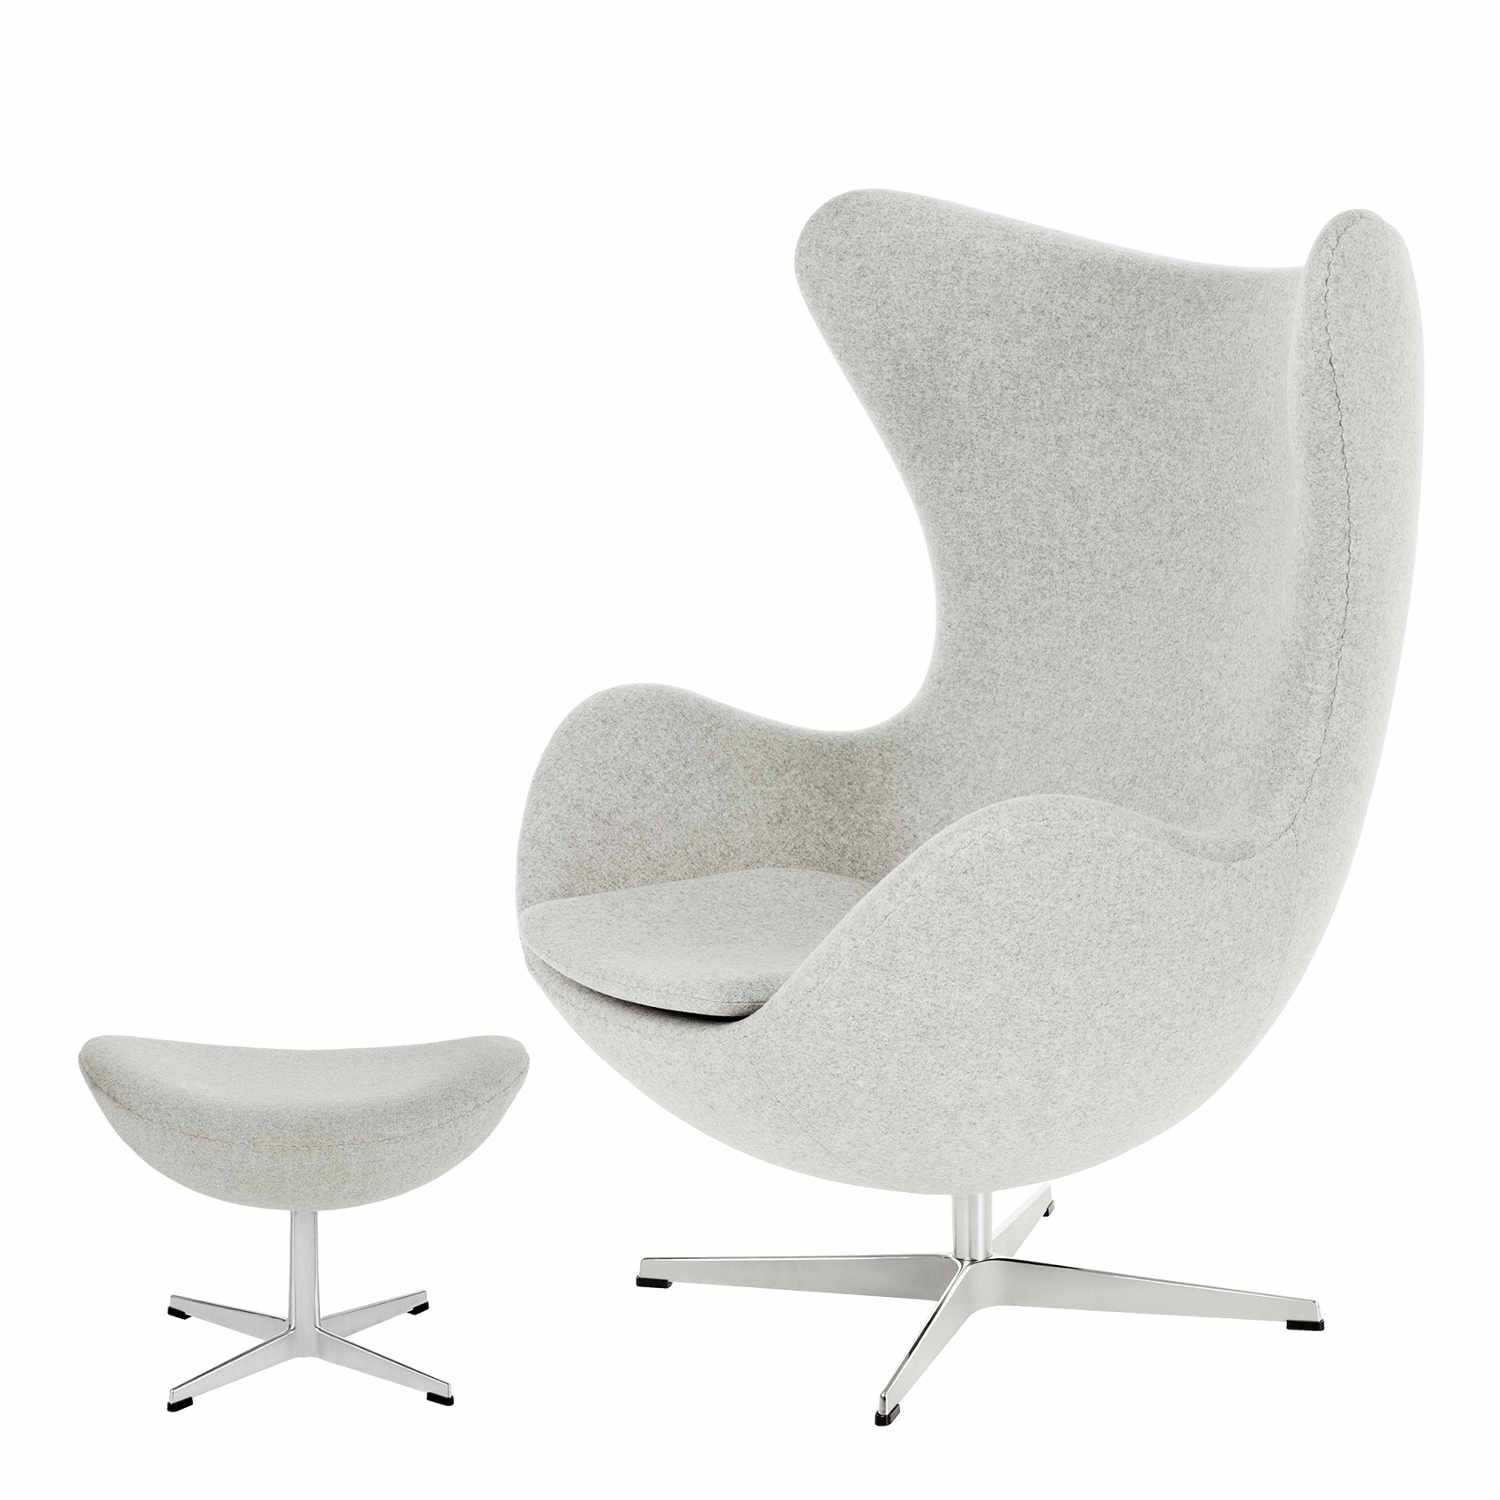 Das Ei Sessel Arne Jacobsen Fritz Hansen Das Ei Egg 3316 Sessel And 3127 Fusshocker